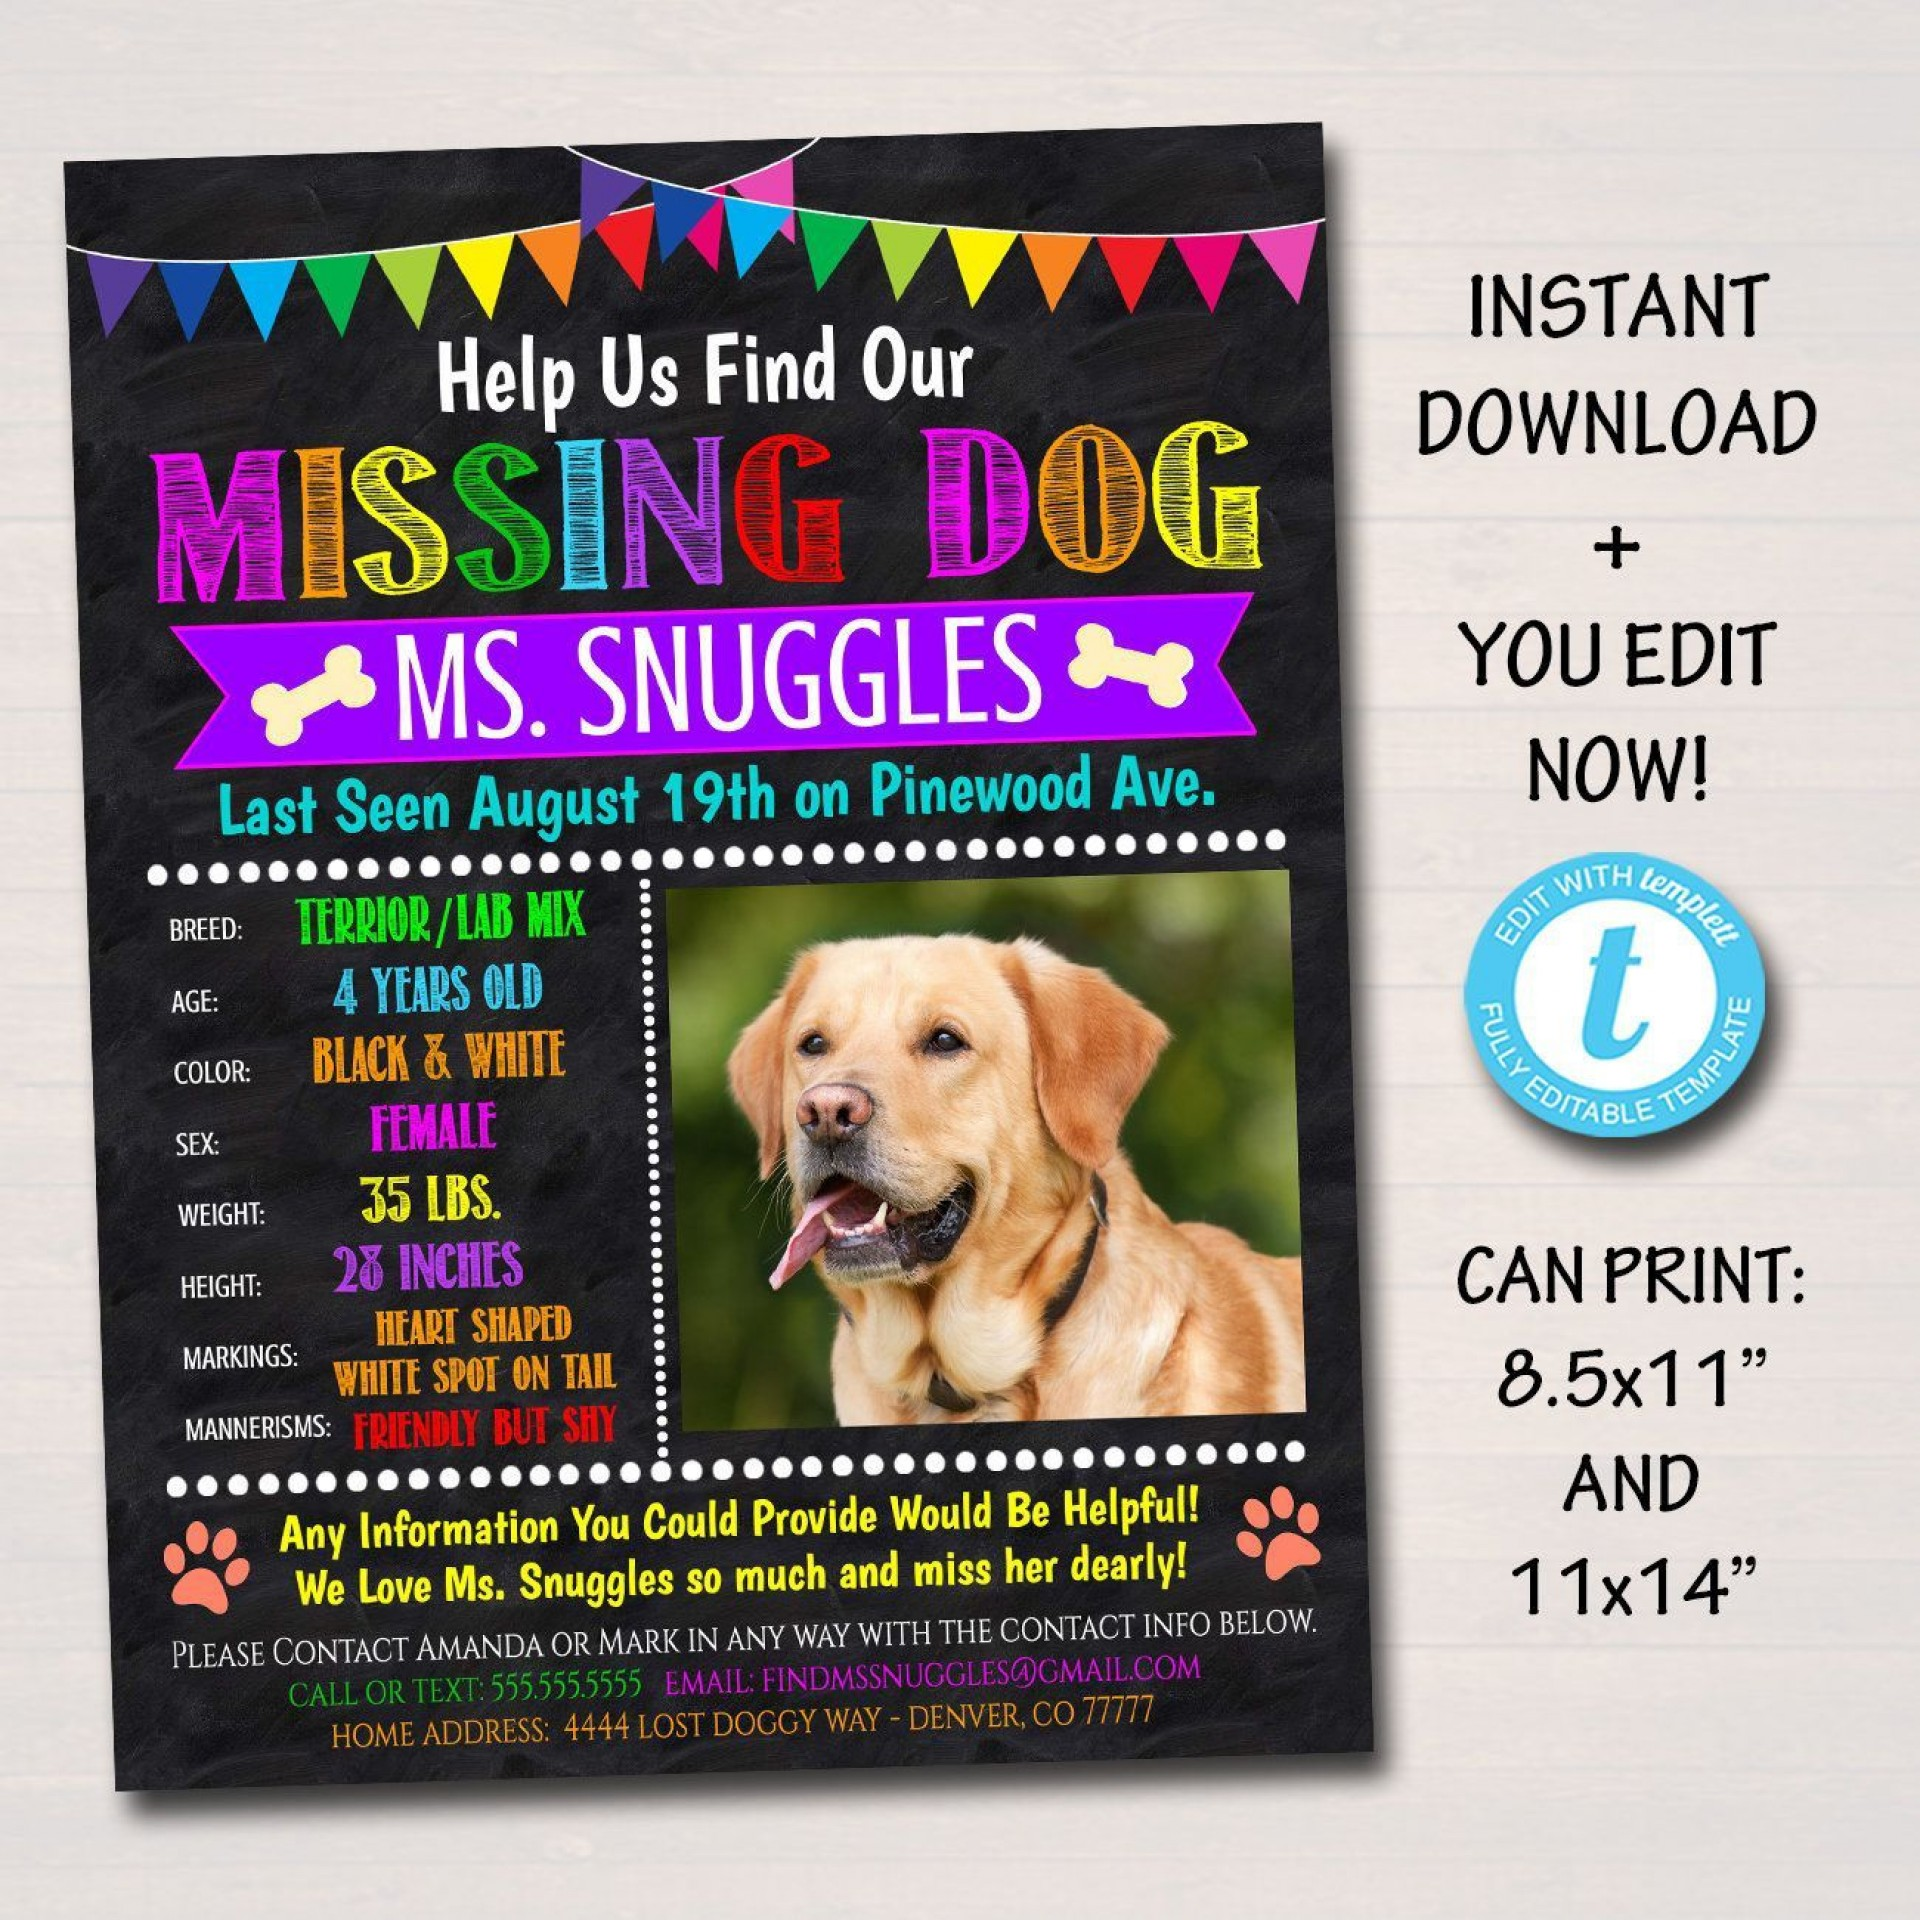 004 Unique Lost Dog Flyer Template Concept  Printable Missing Pet1920